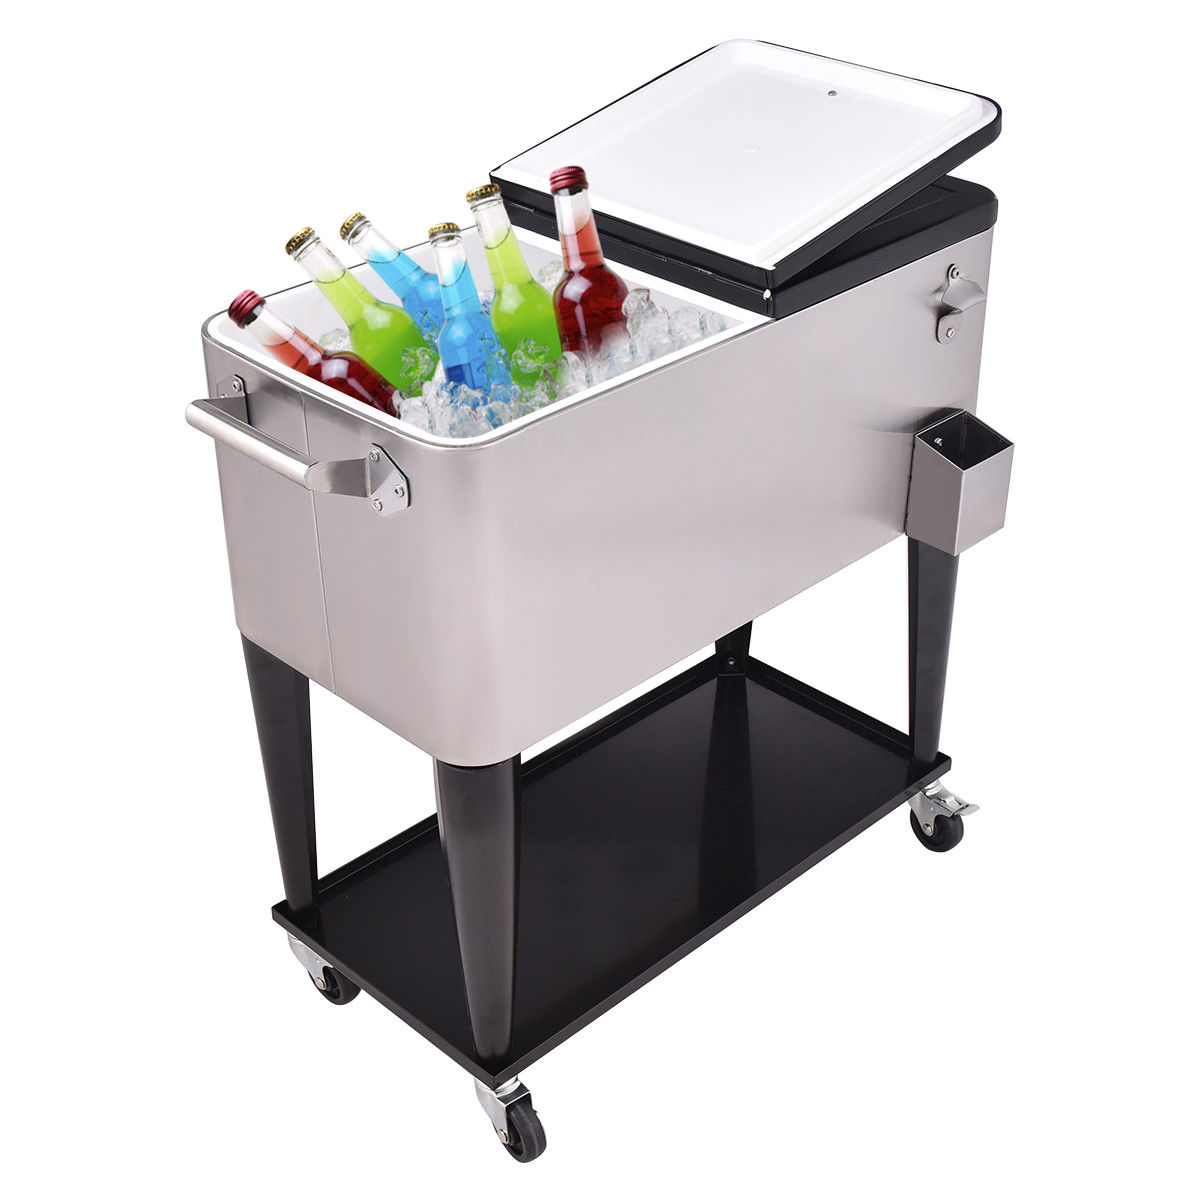 Image of 80 Quart Patio Rolling Stainless Steel Ice Beverage Cooler